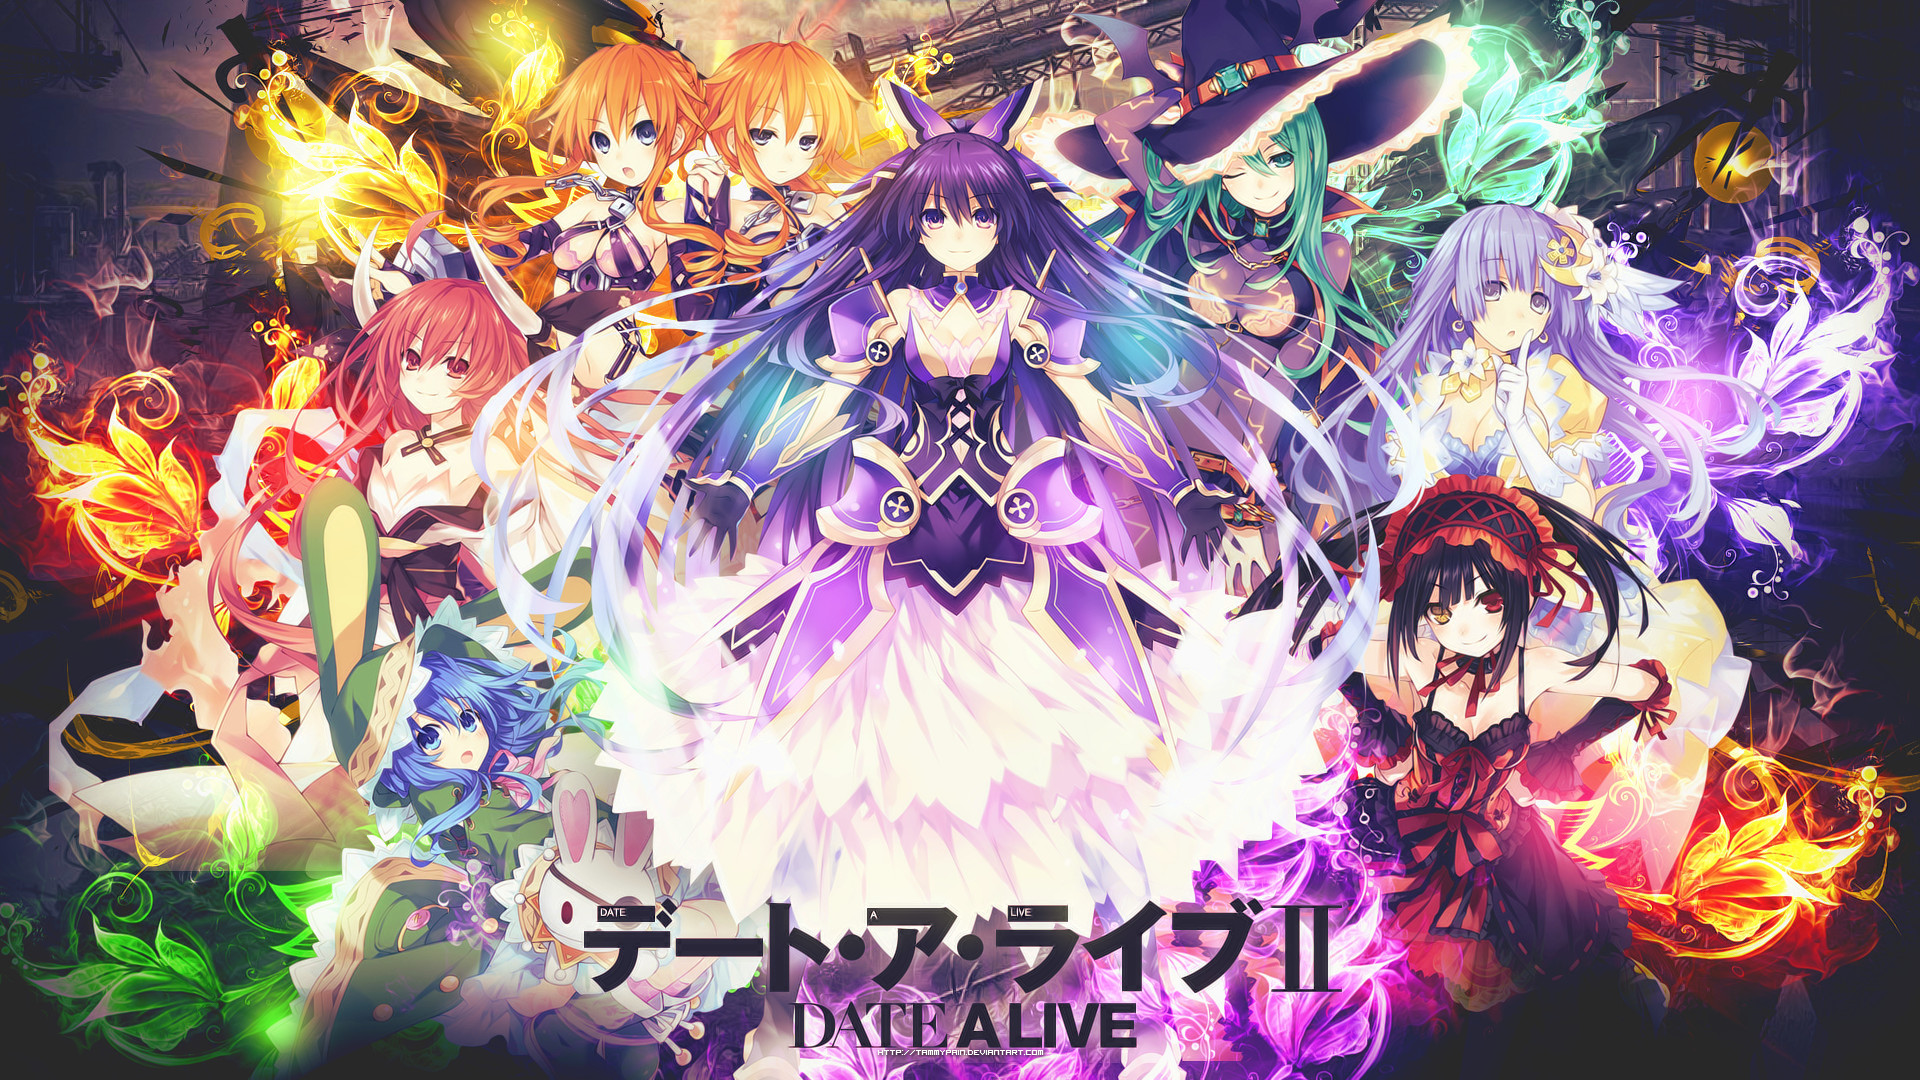 Live pc wallpapers for desktop. 1366x768 Anime Wallpaper (58+ images)